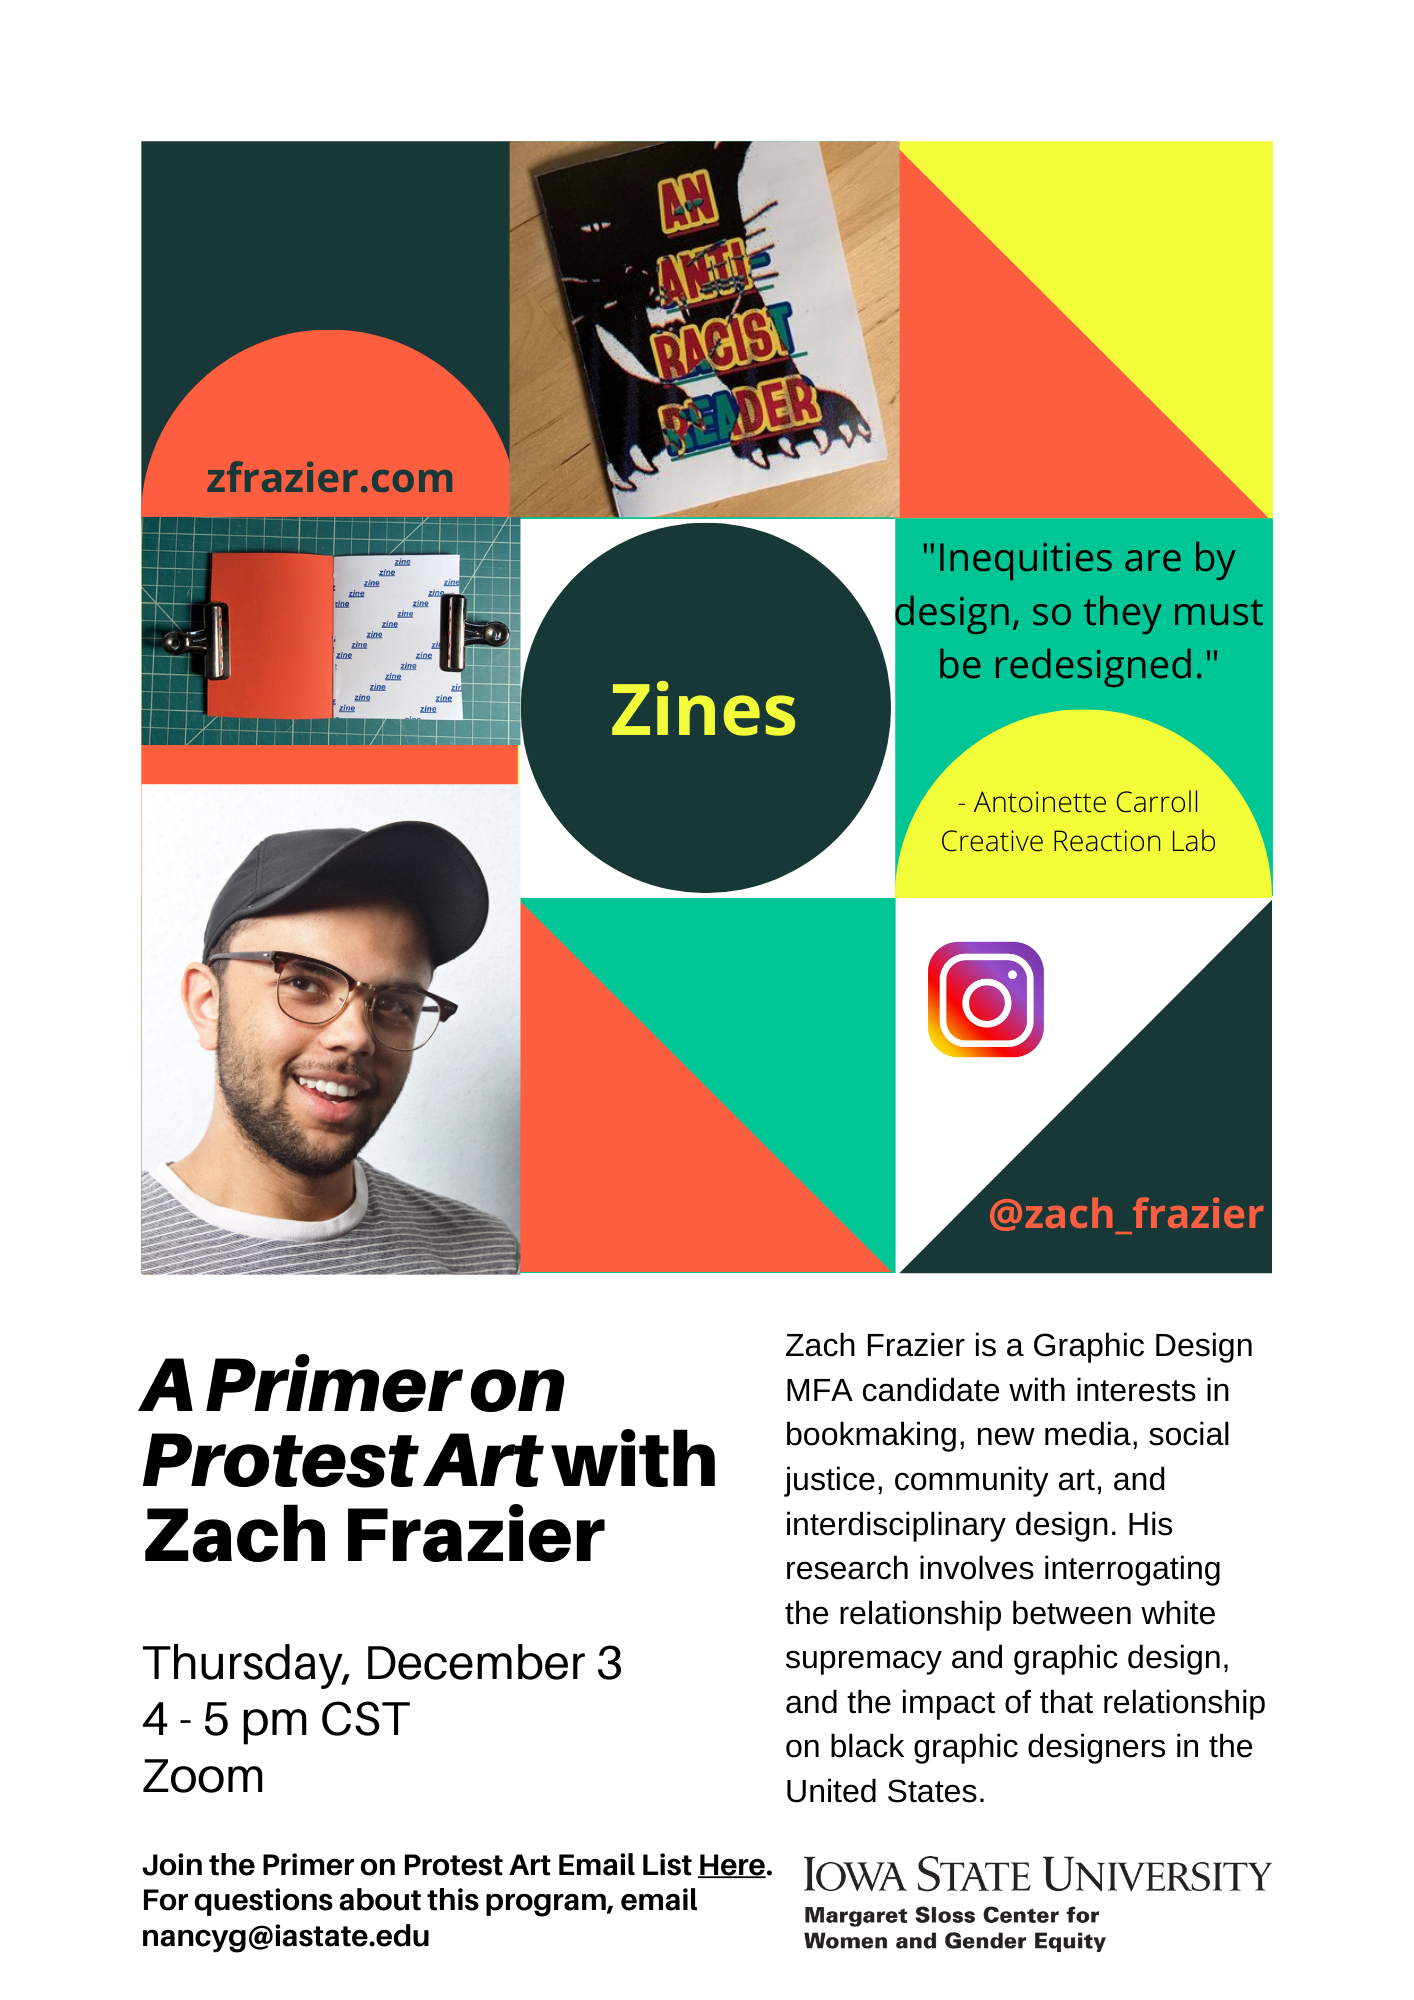 Photo collage of Zach Frazier's visual art and event text